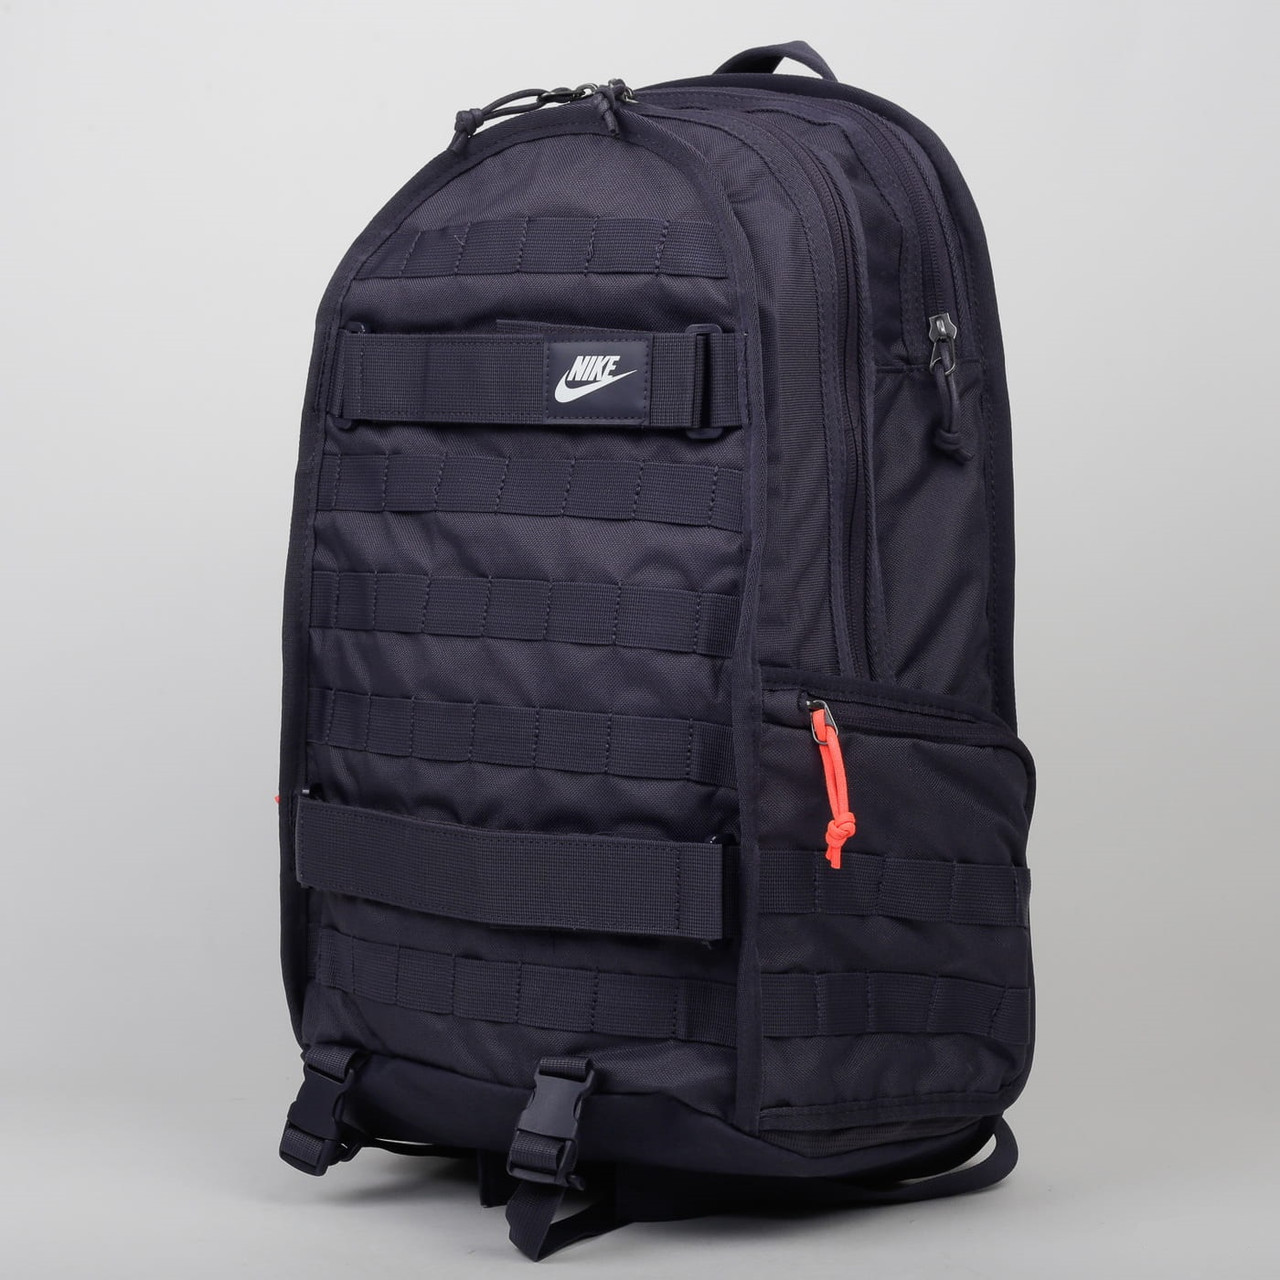 Рюкзак Nike NSW Premium Backpack BA5971-015 Черный (193151311023)